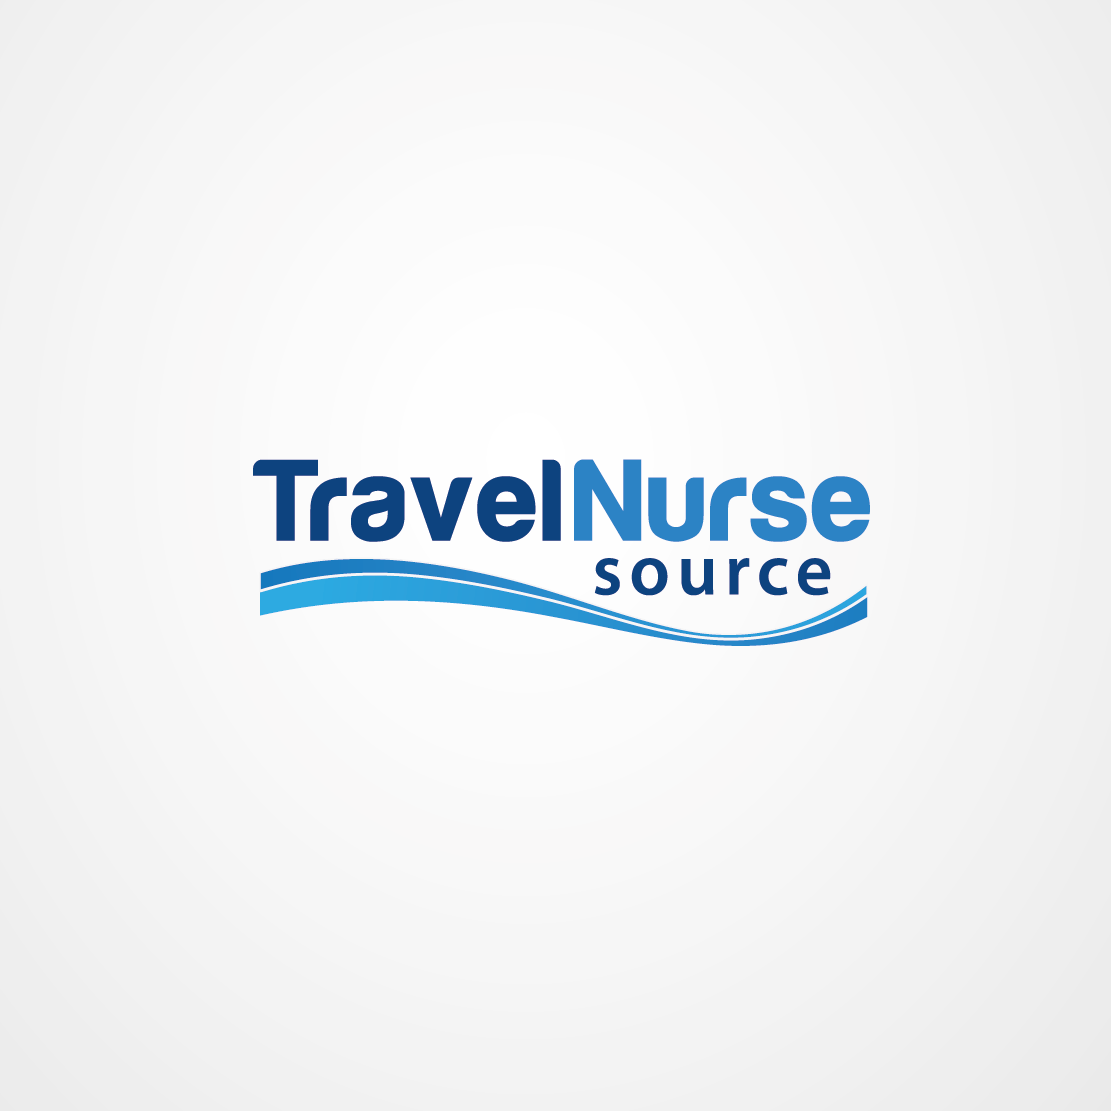 New logo wanted for Travel Nurse Source